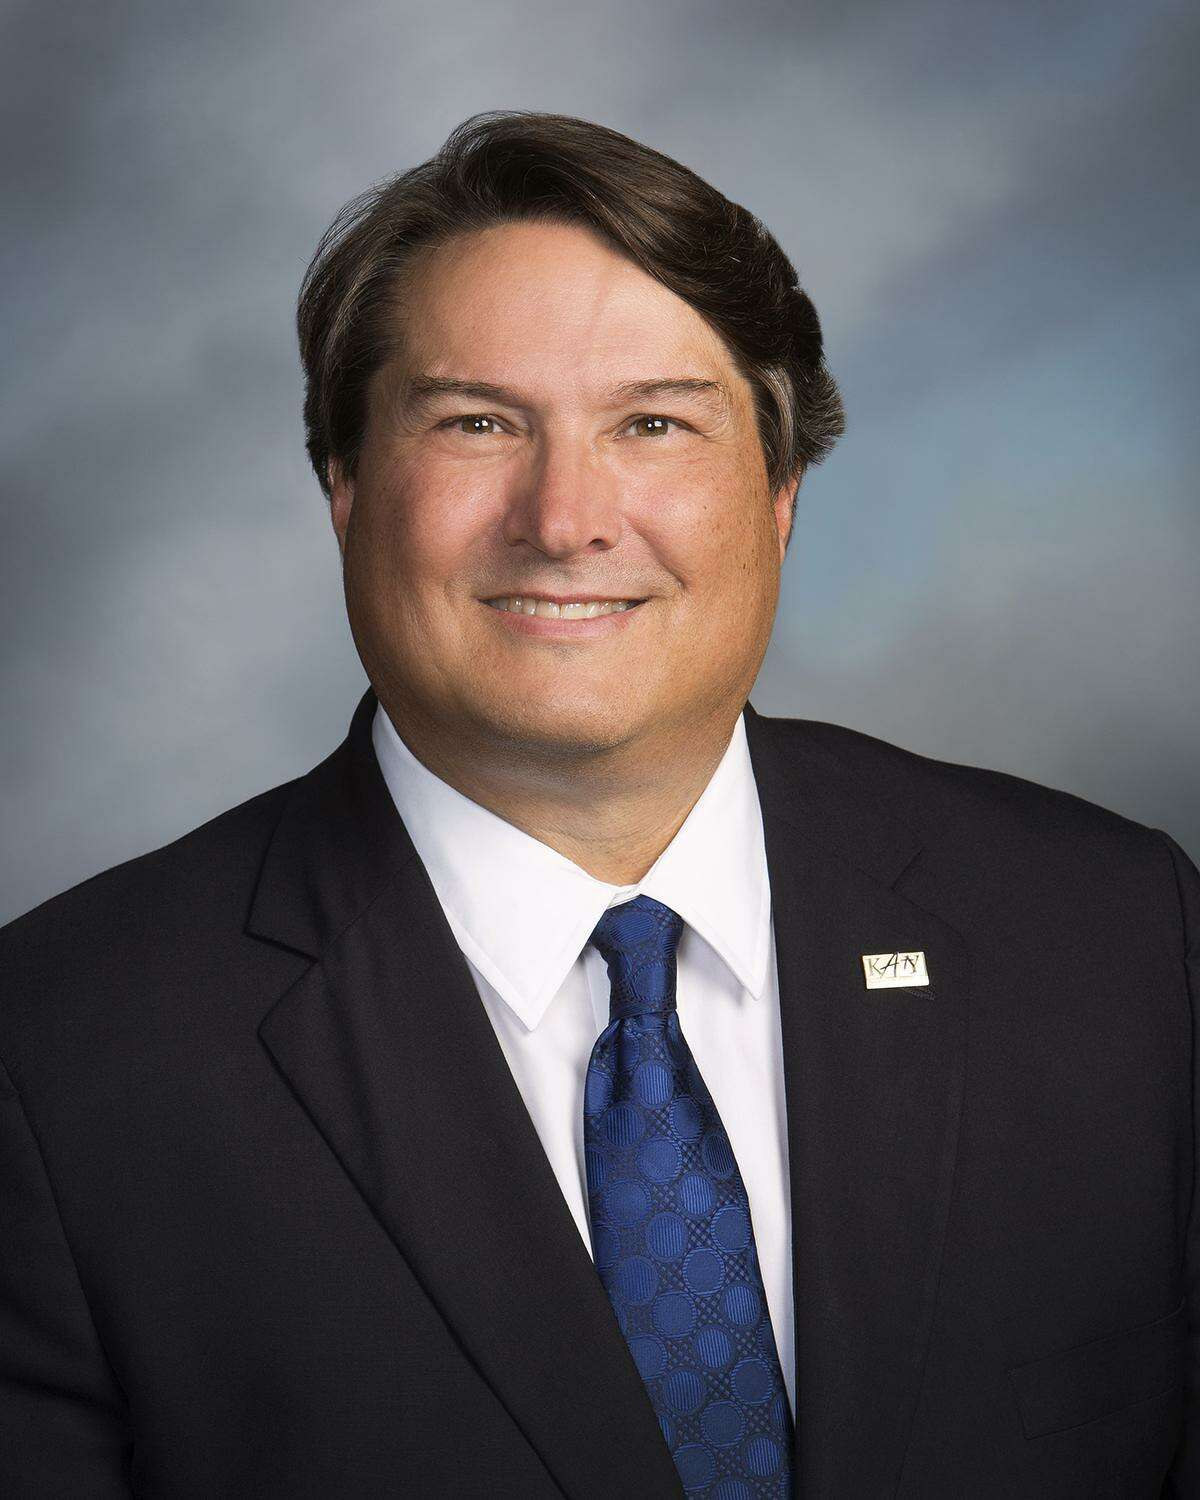 Position 5 Trustee Bill Lacy has drawn an opponent in the May 2 Katy Independent School District school board election.